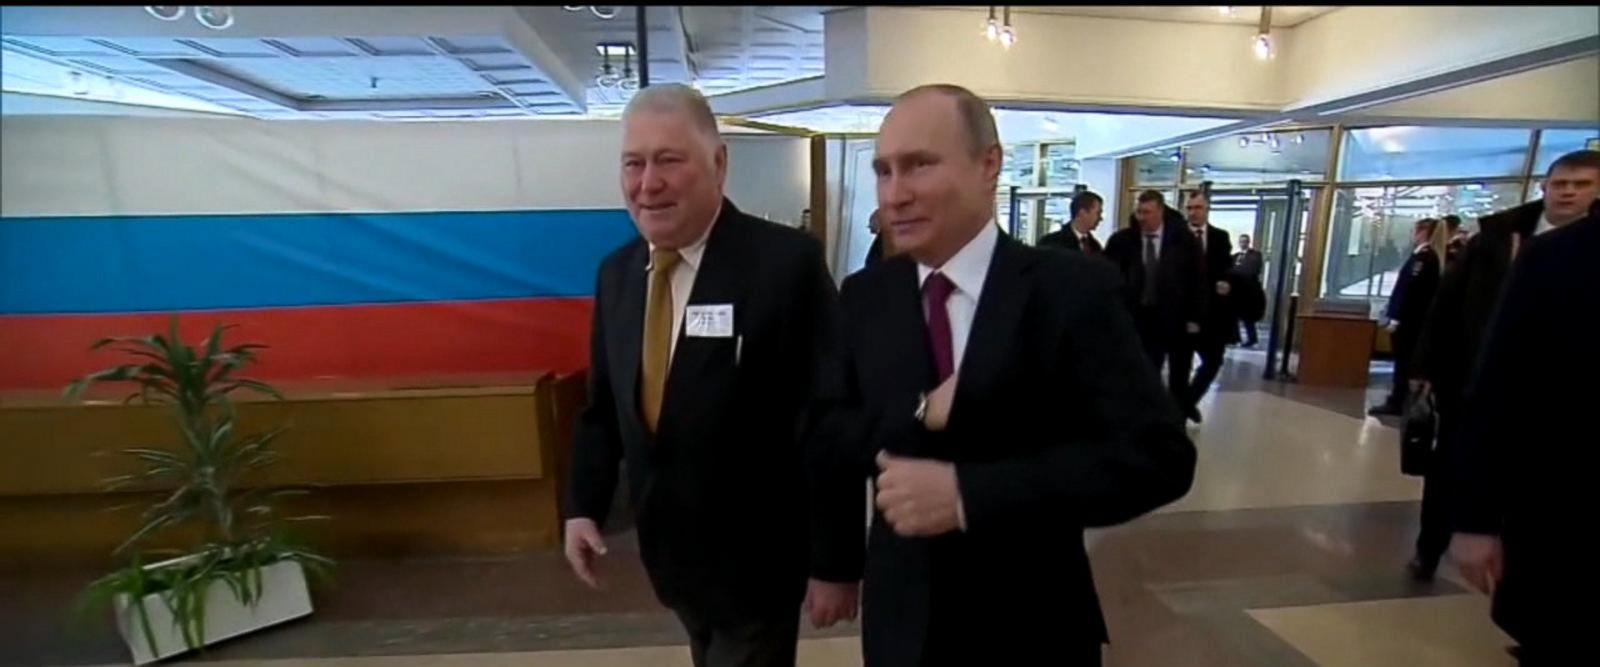 VIDEO: Election day in Russia proves triumphant for Putin